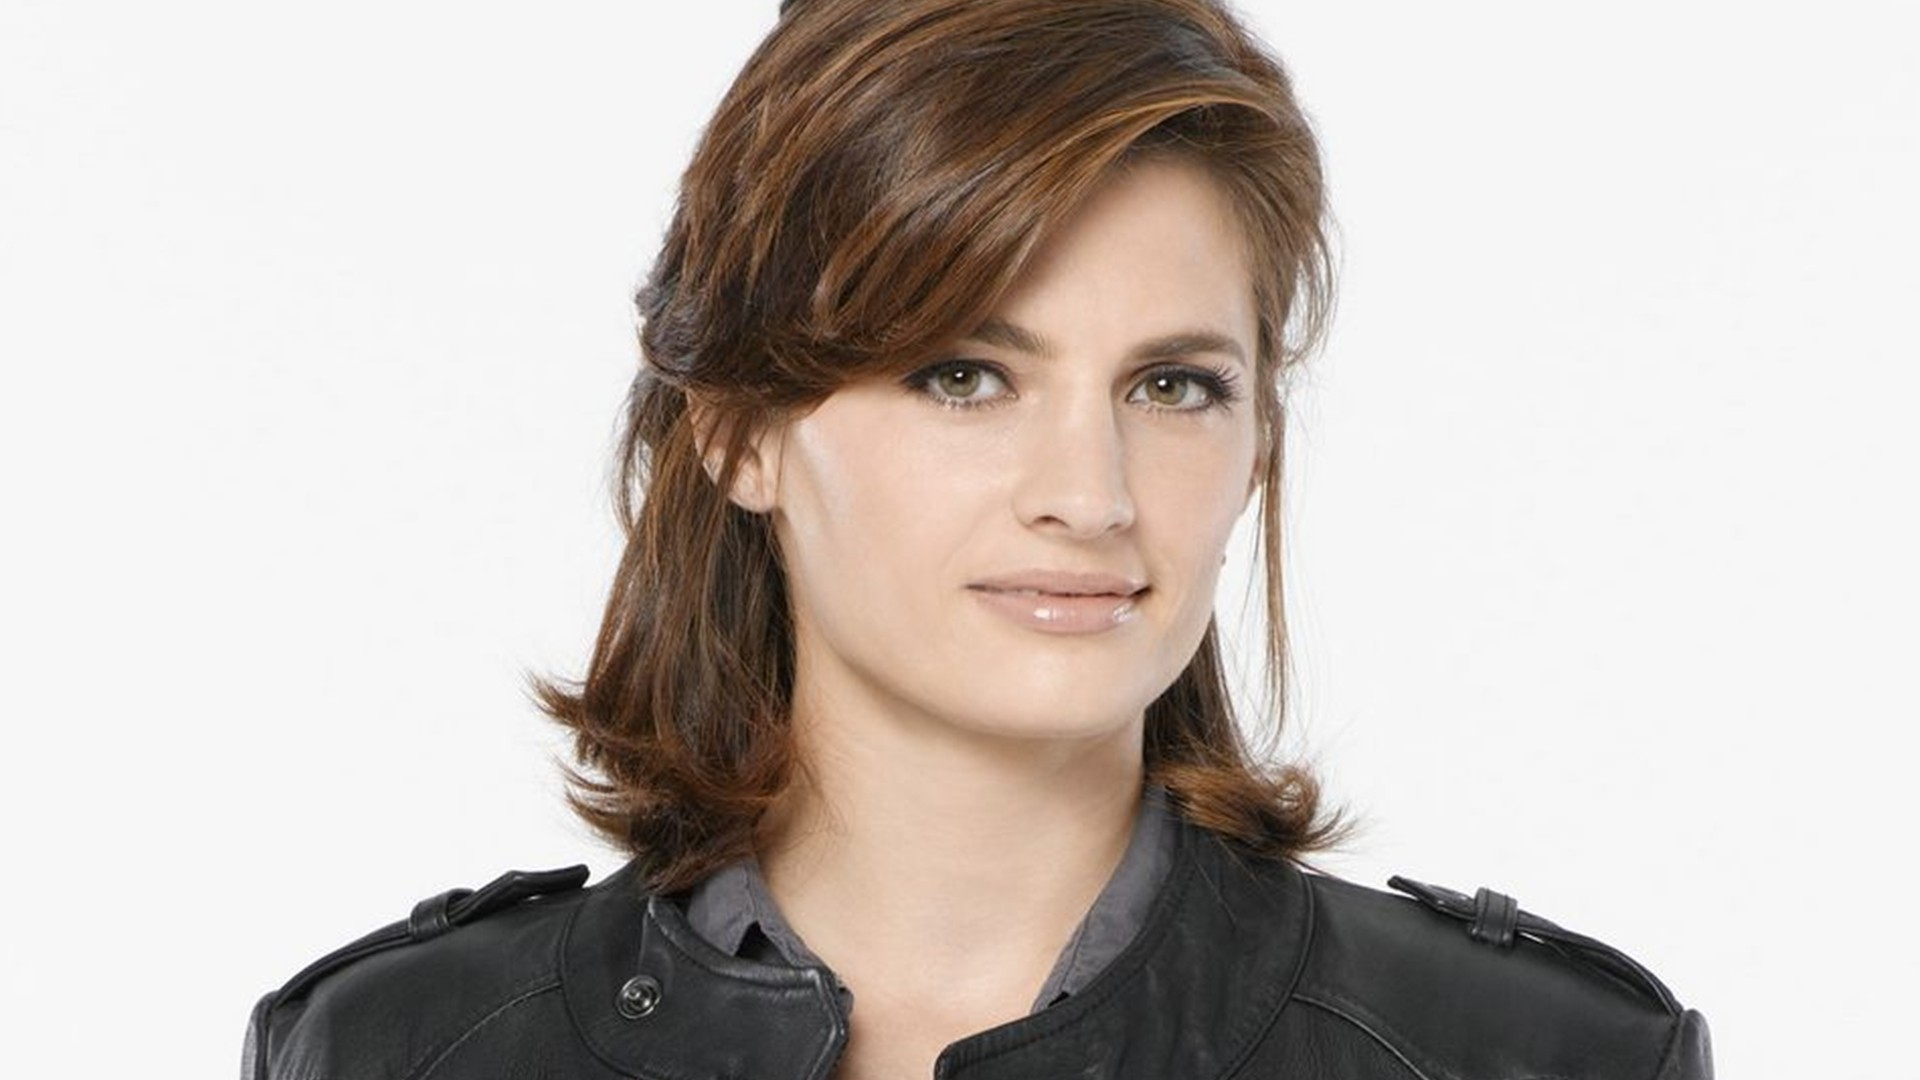 stana katic actress wallpaper - photo #1